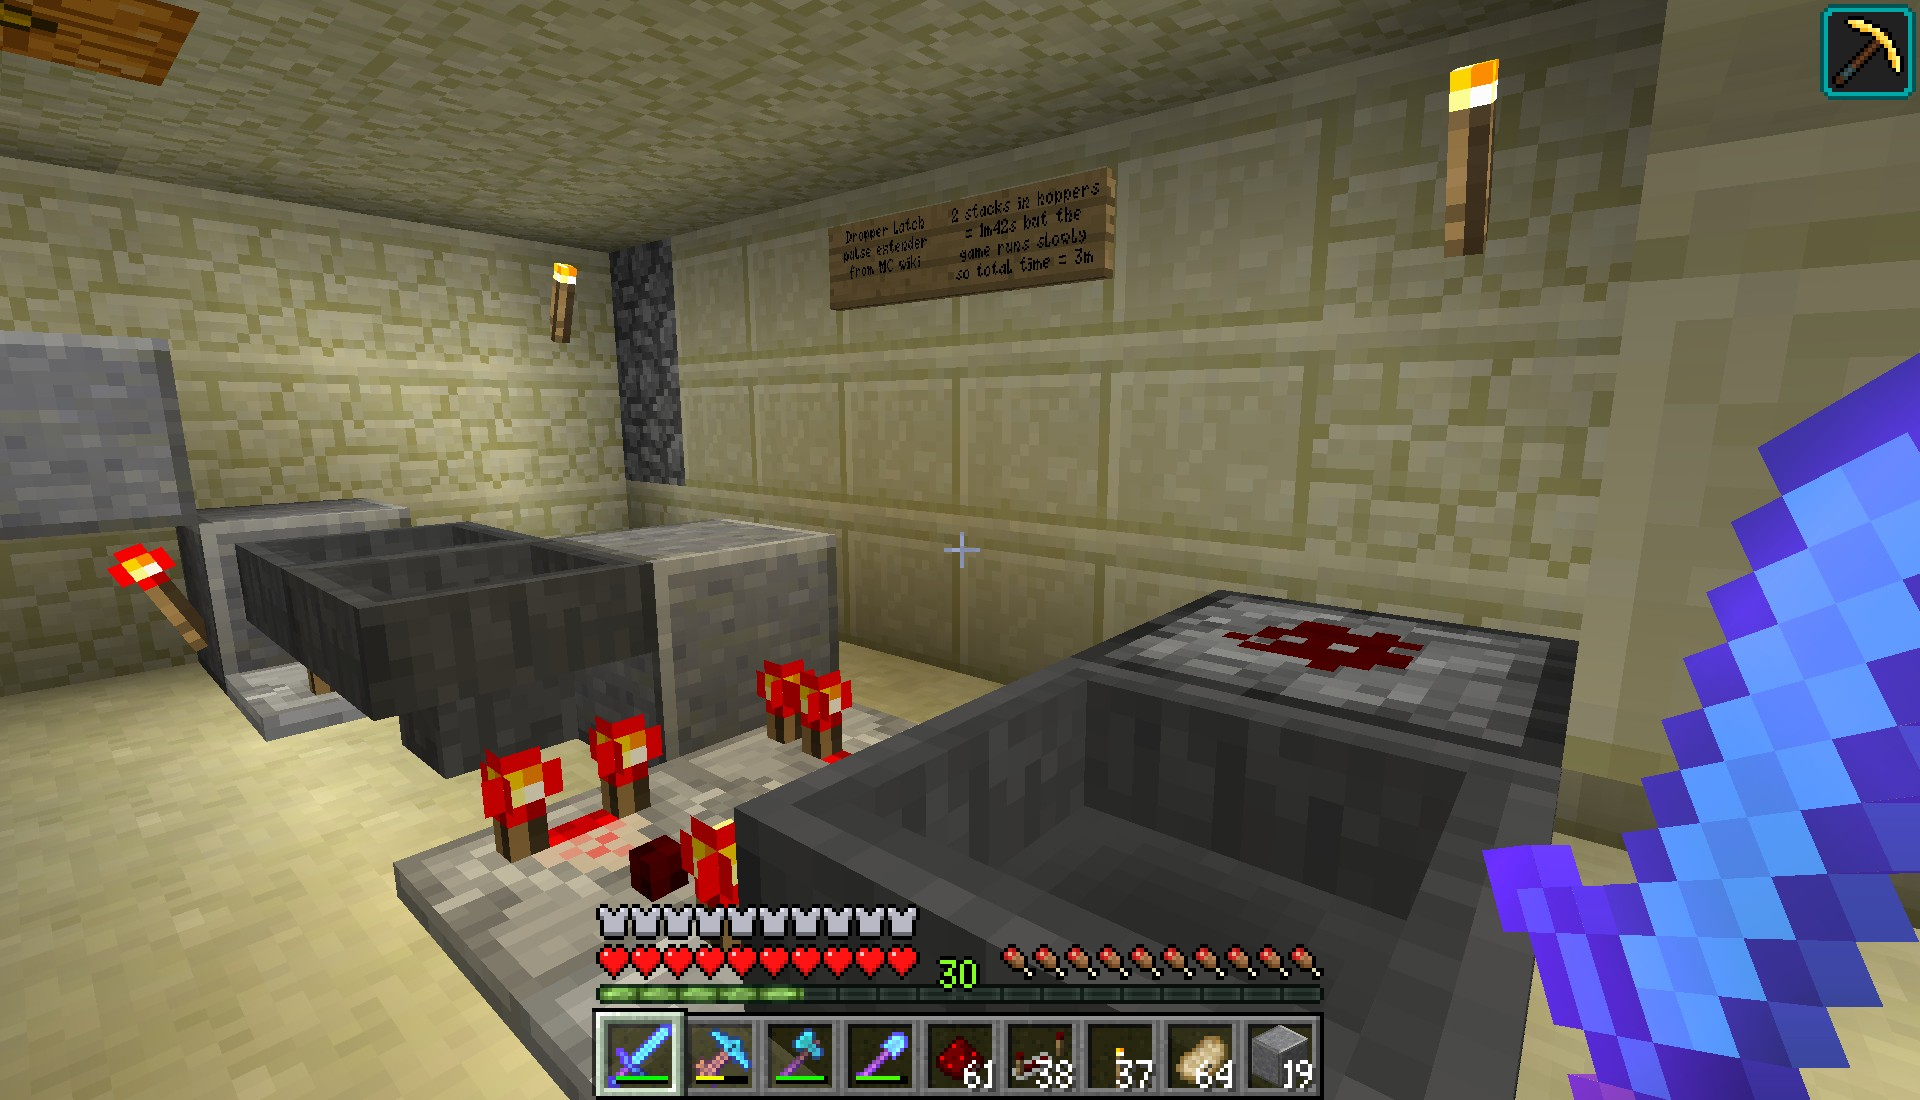 The Diamond Hammer Minecraft With Of Retribution Ogg Cast Wiki Redstone Circuits Now Into Circuitry And This Device Is A Pulse Extender I Found On Once Id Discovered My Usual Go To By Xisumavoid Wouldnt